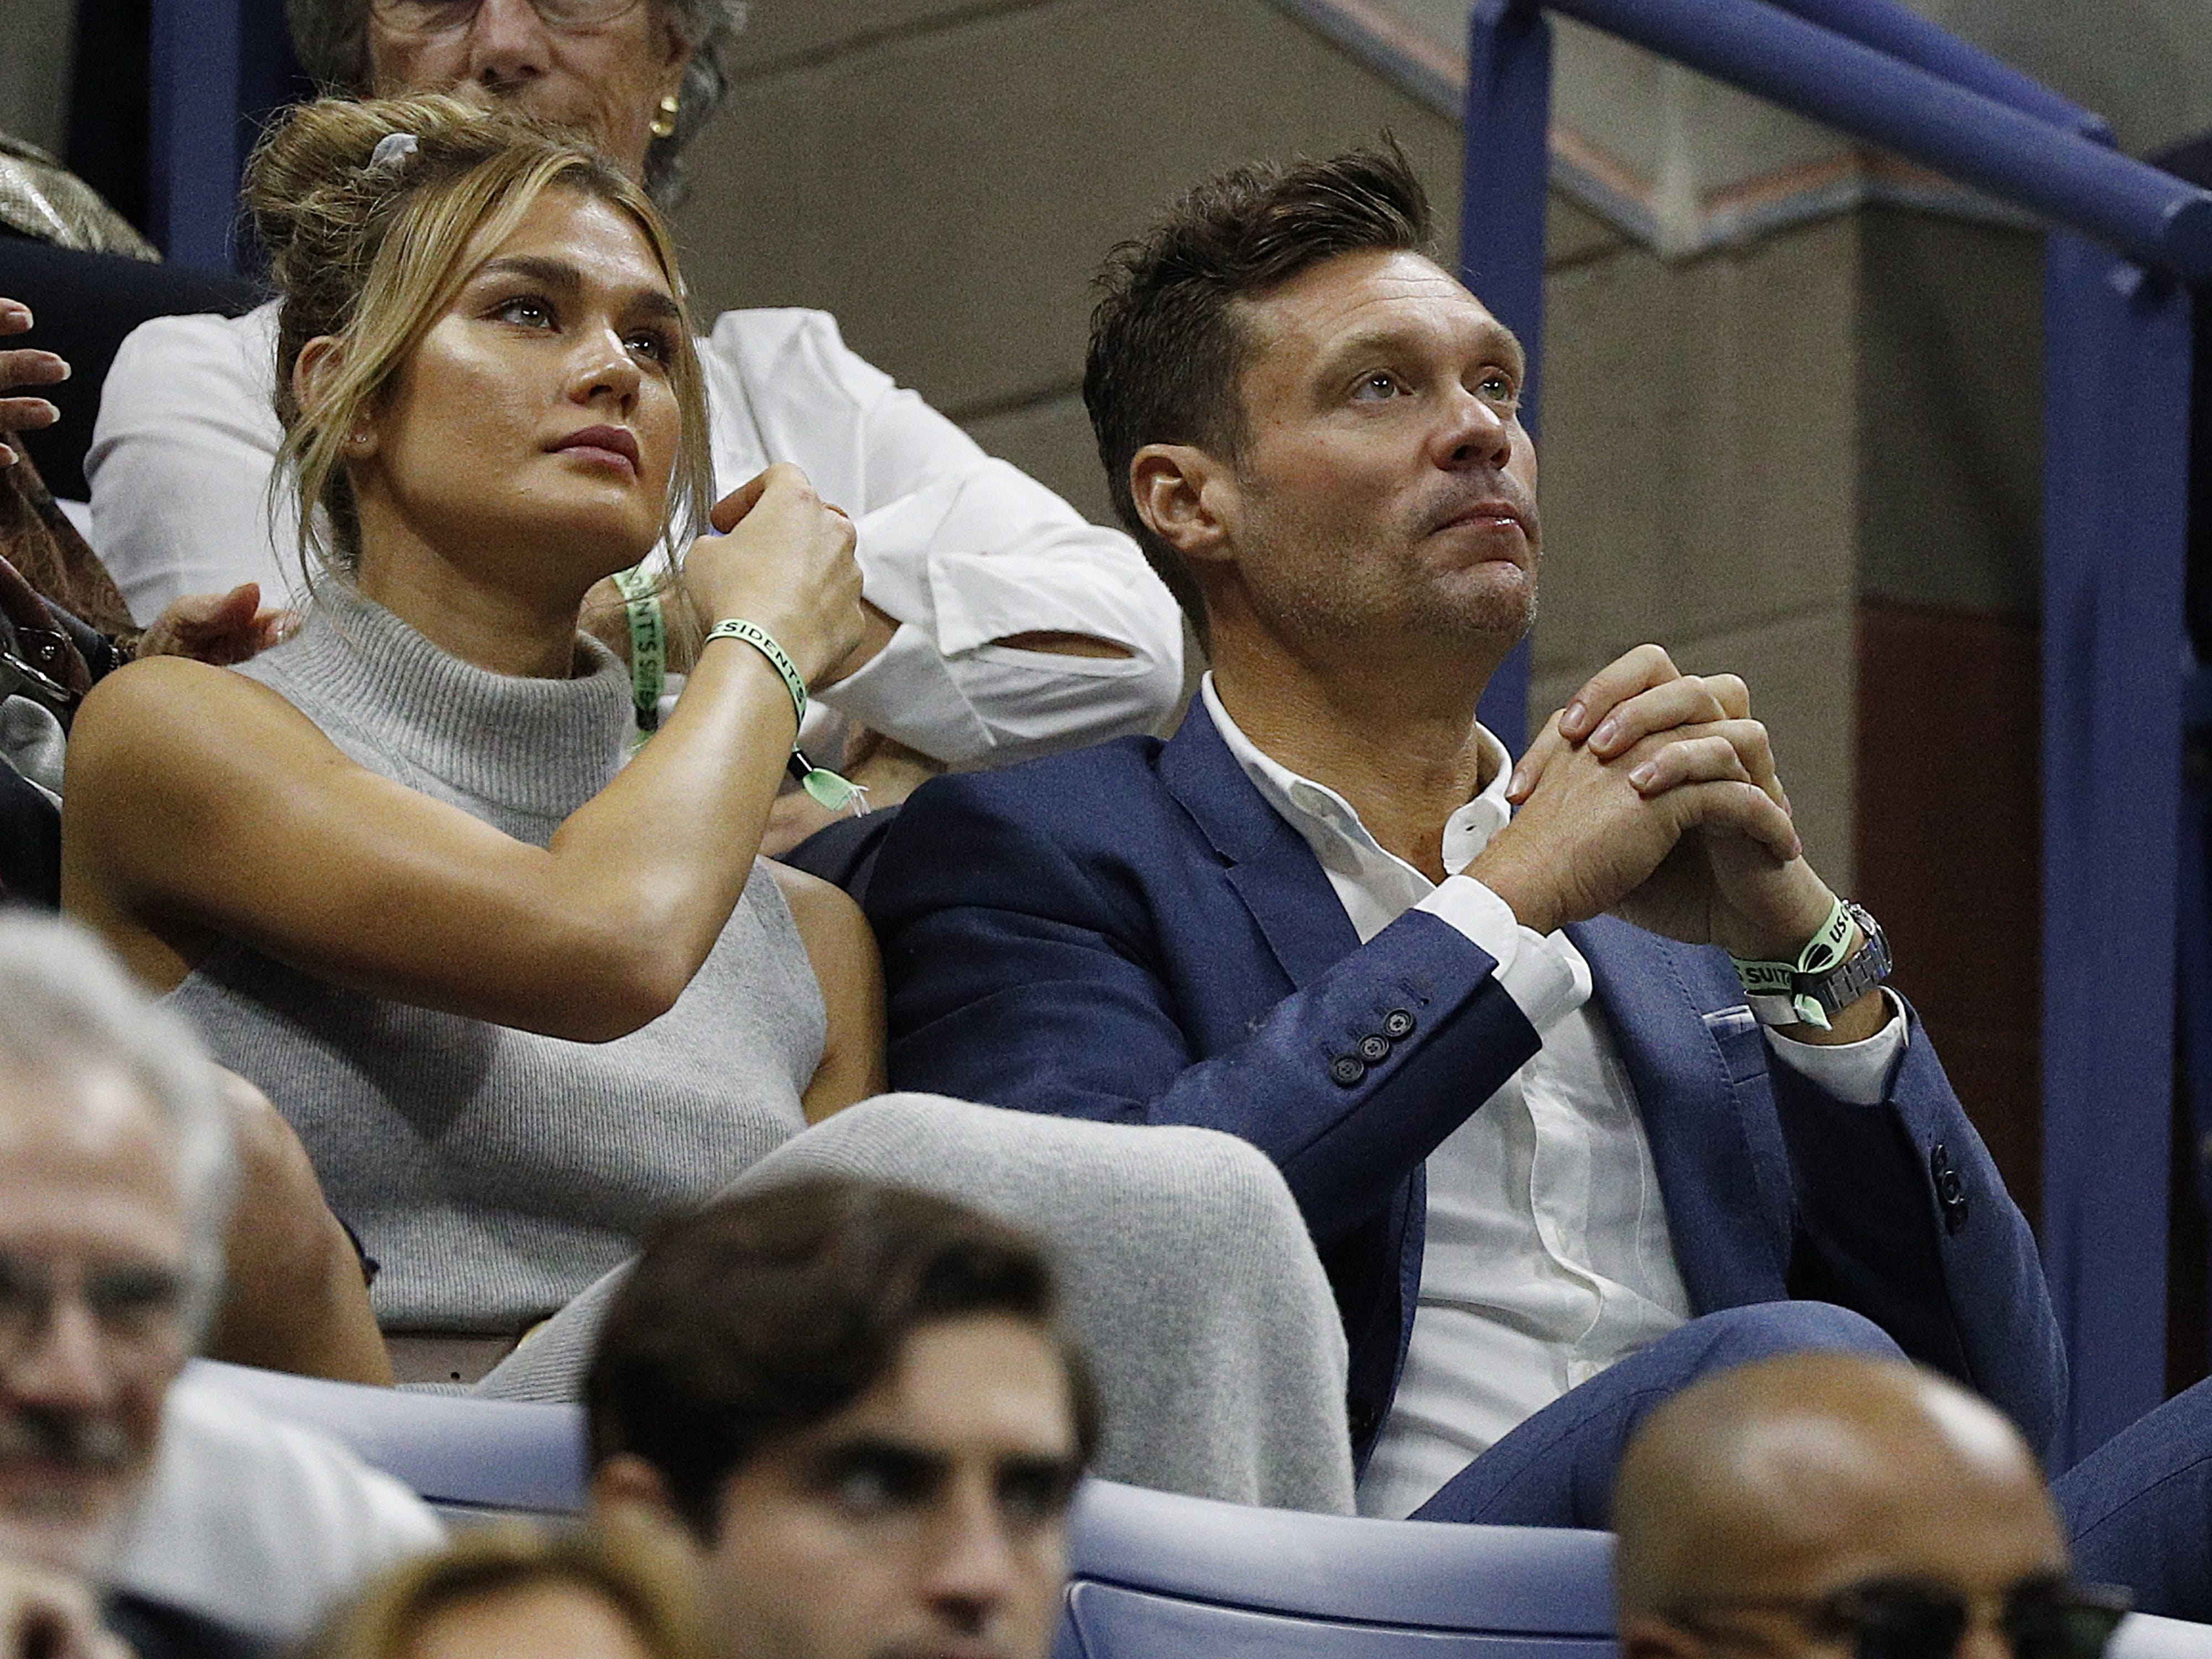 TV personality Ryan Seacrest, right, watches the men's final between Novak Djokovic and Juan Martin del Potro.